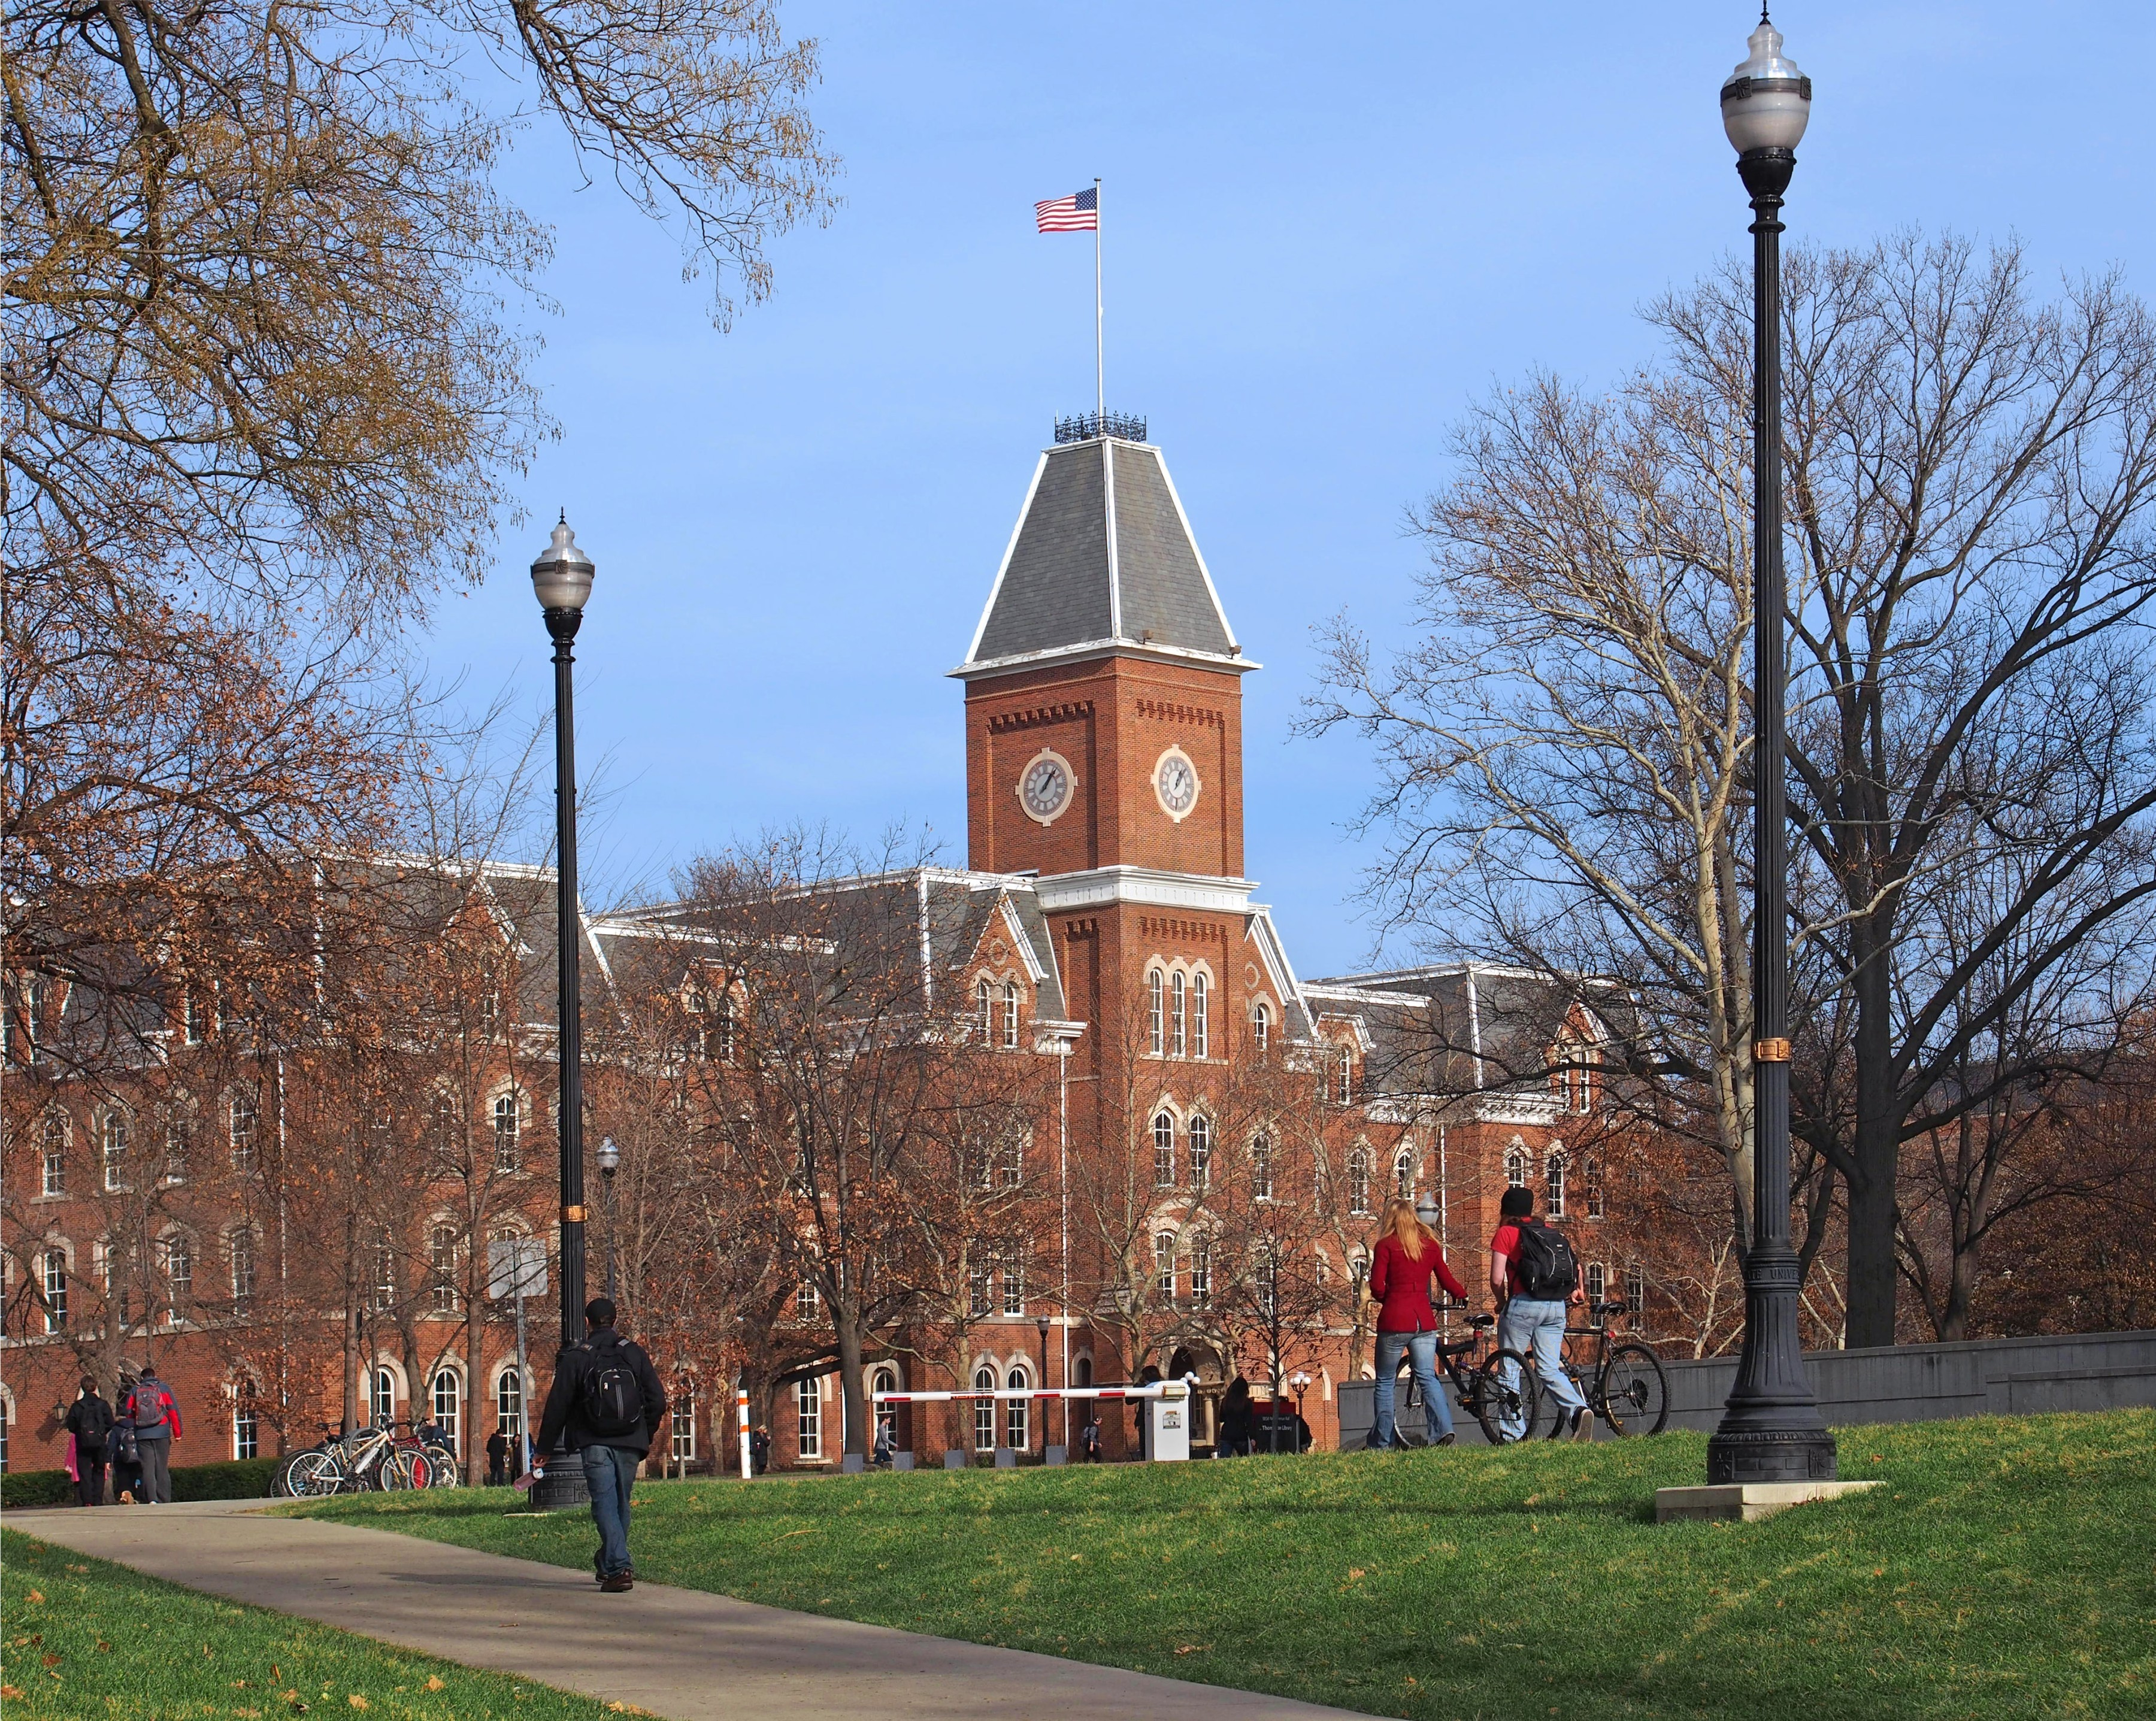 What is the difference between a liberal arts college and a research university?